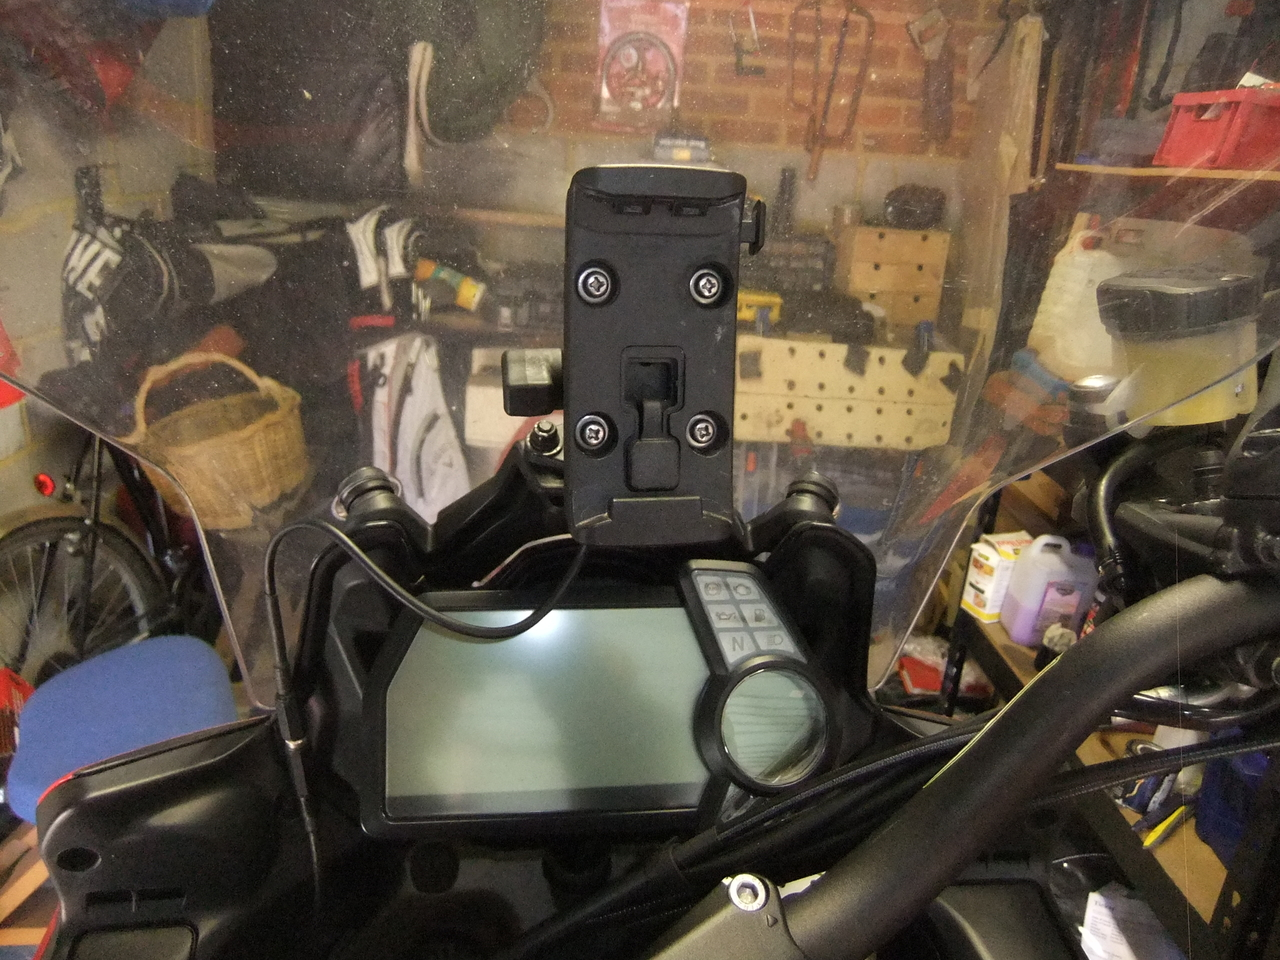 GPS backplate mounted